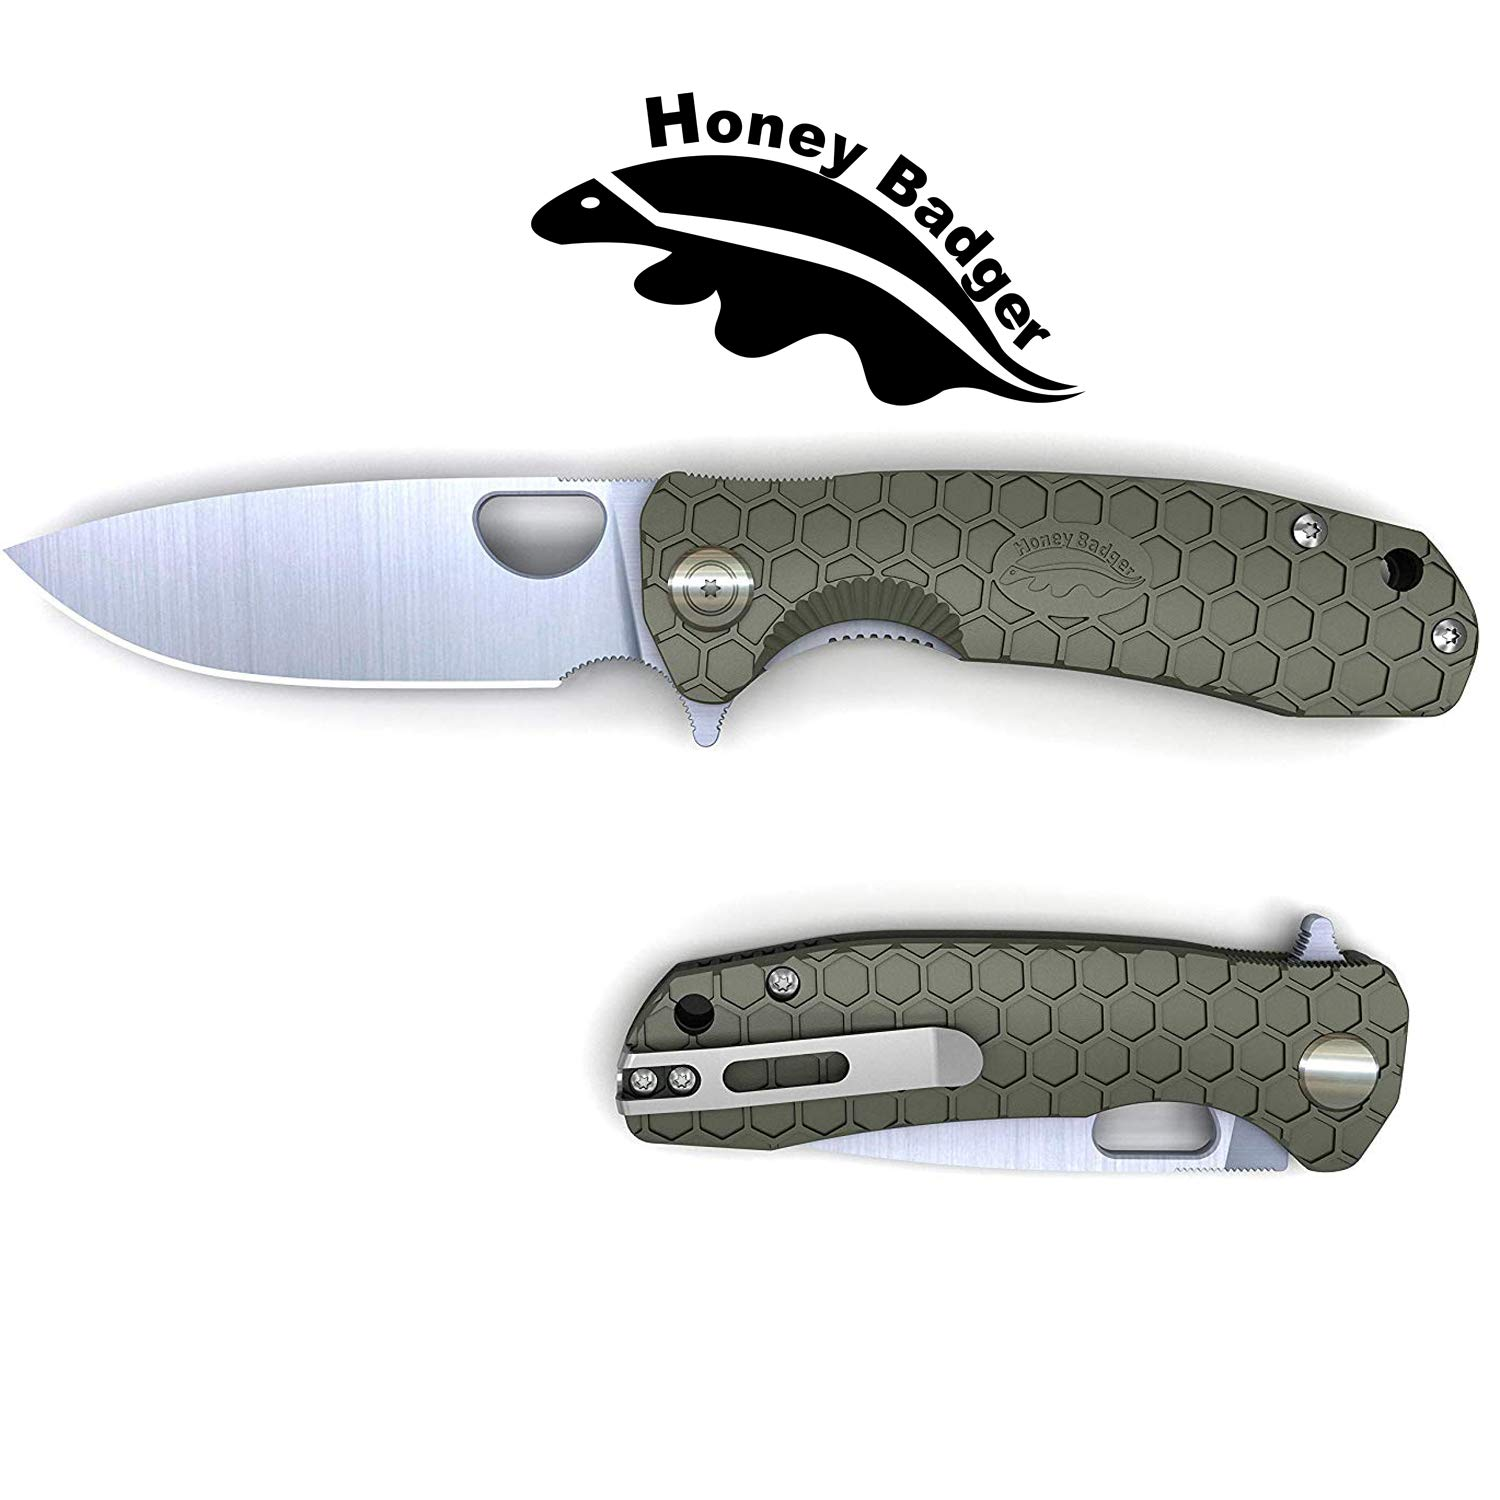 Western Active Honey Badger Flipper Folding Lock Knife Ball Bearing 8cr13MOV Steel Deep Pocket Carry Clip Gift Box with Torx Wrench (Green, Medium 2.96oz - 4.1'' Closed - 3.2'' Blade) by Western Active